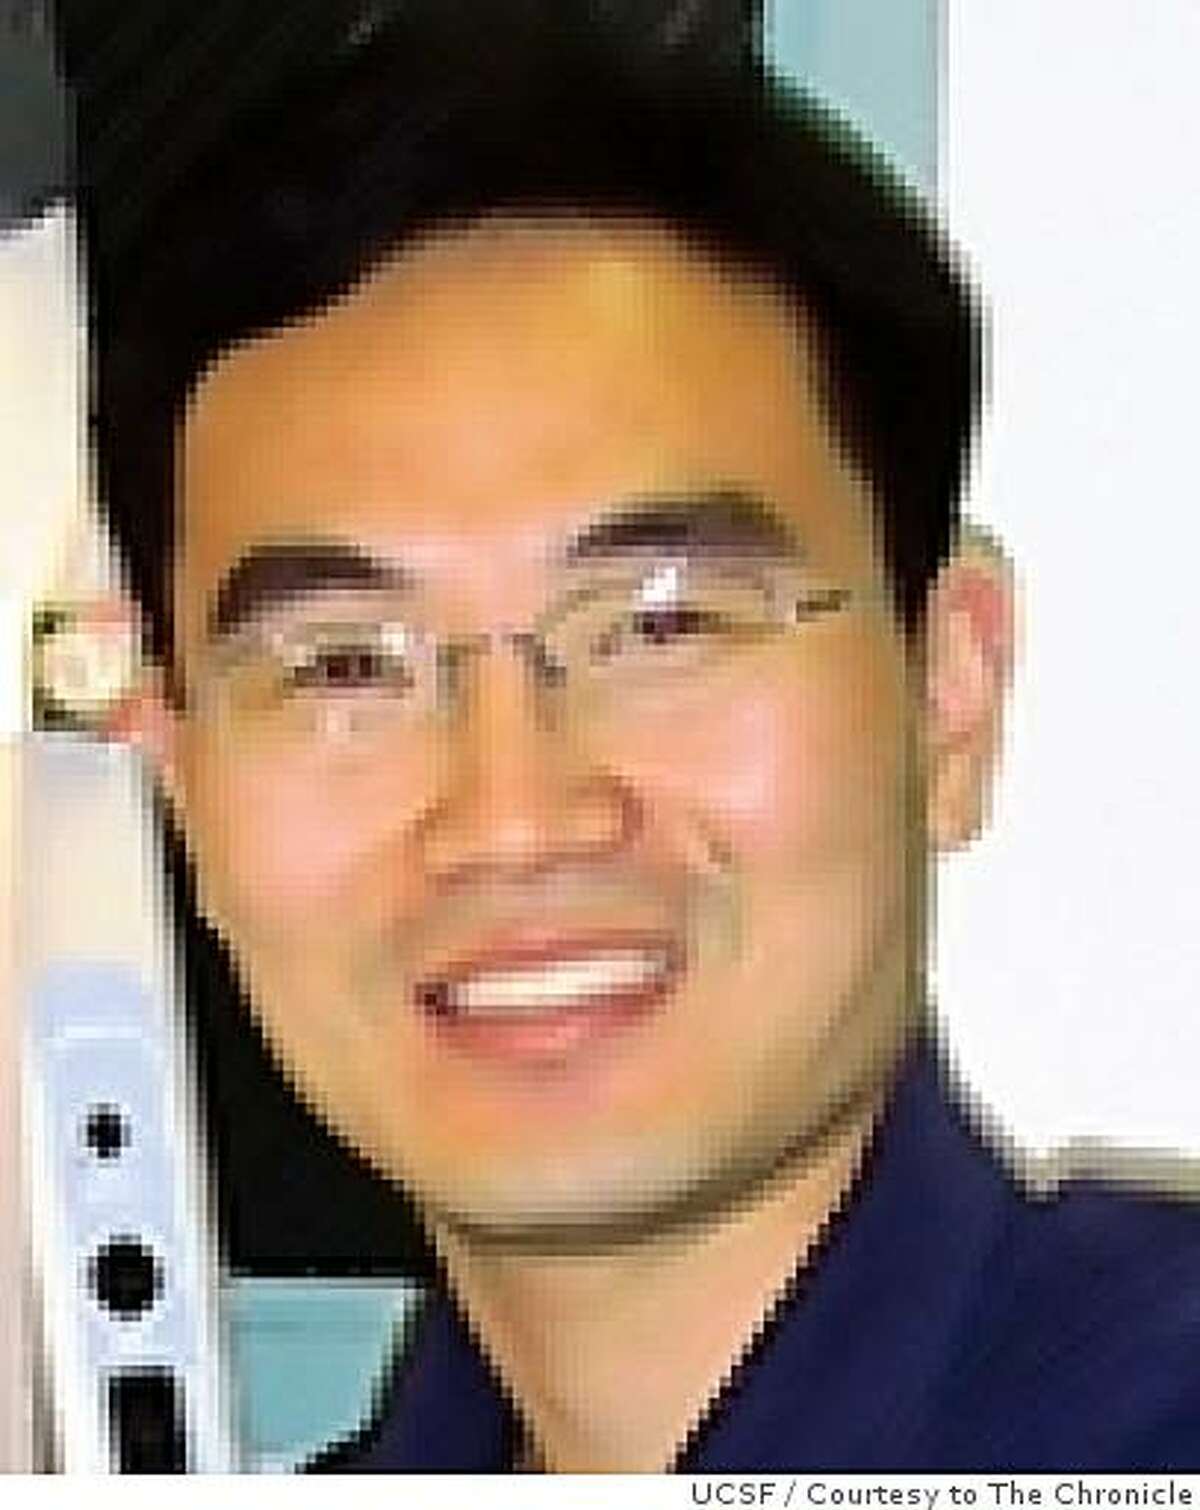 Benchun Liu, a doctor in the UCSF urology department is accused of poisoning a colleague, Mei Cao.